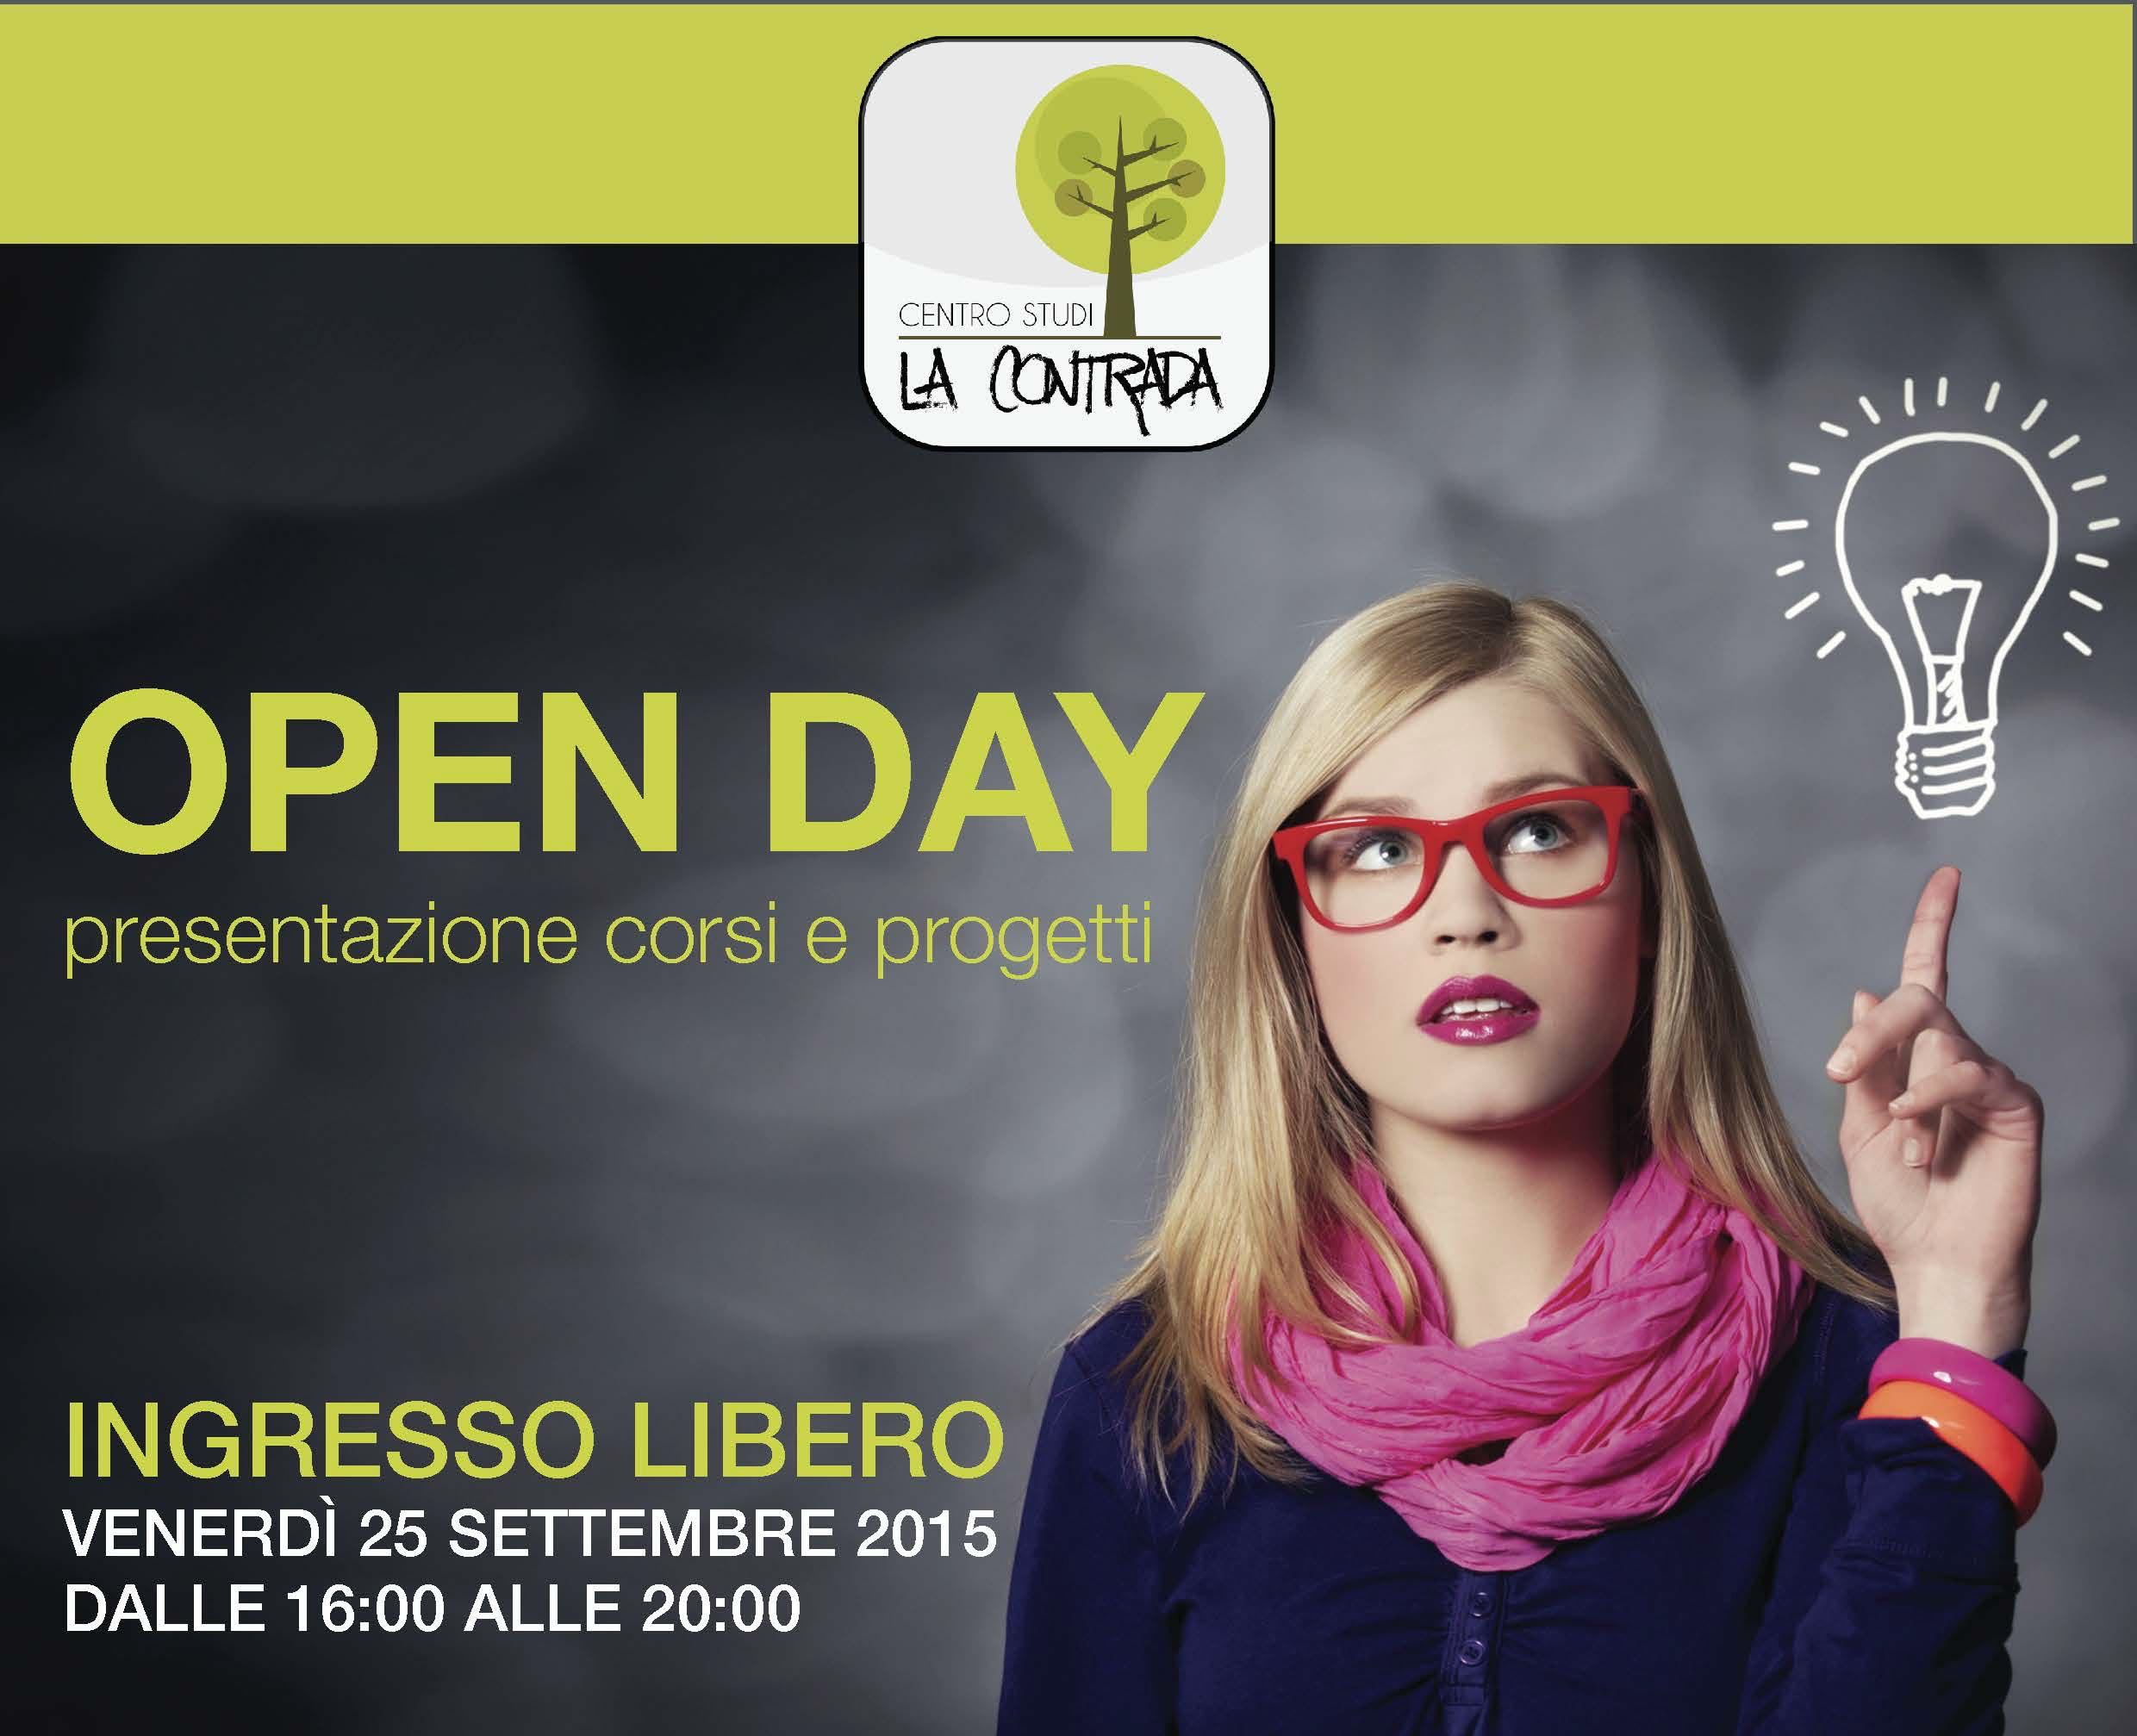 Centro Studi La Contrada Open Day 2015 home HQ